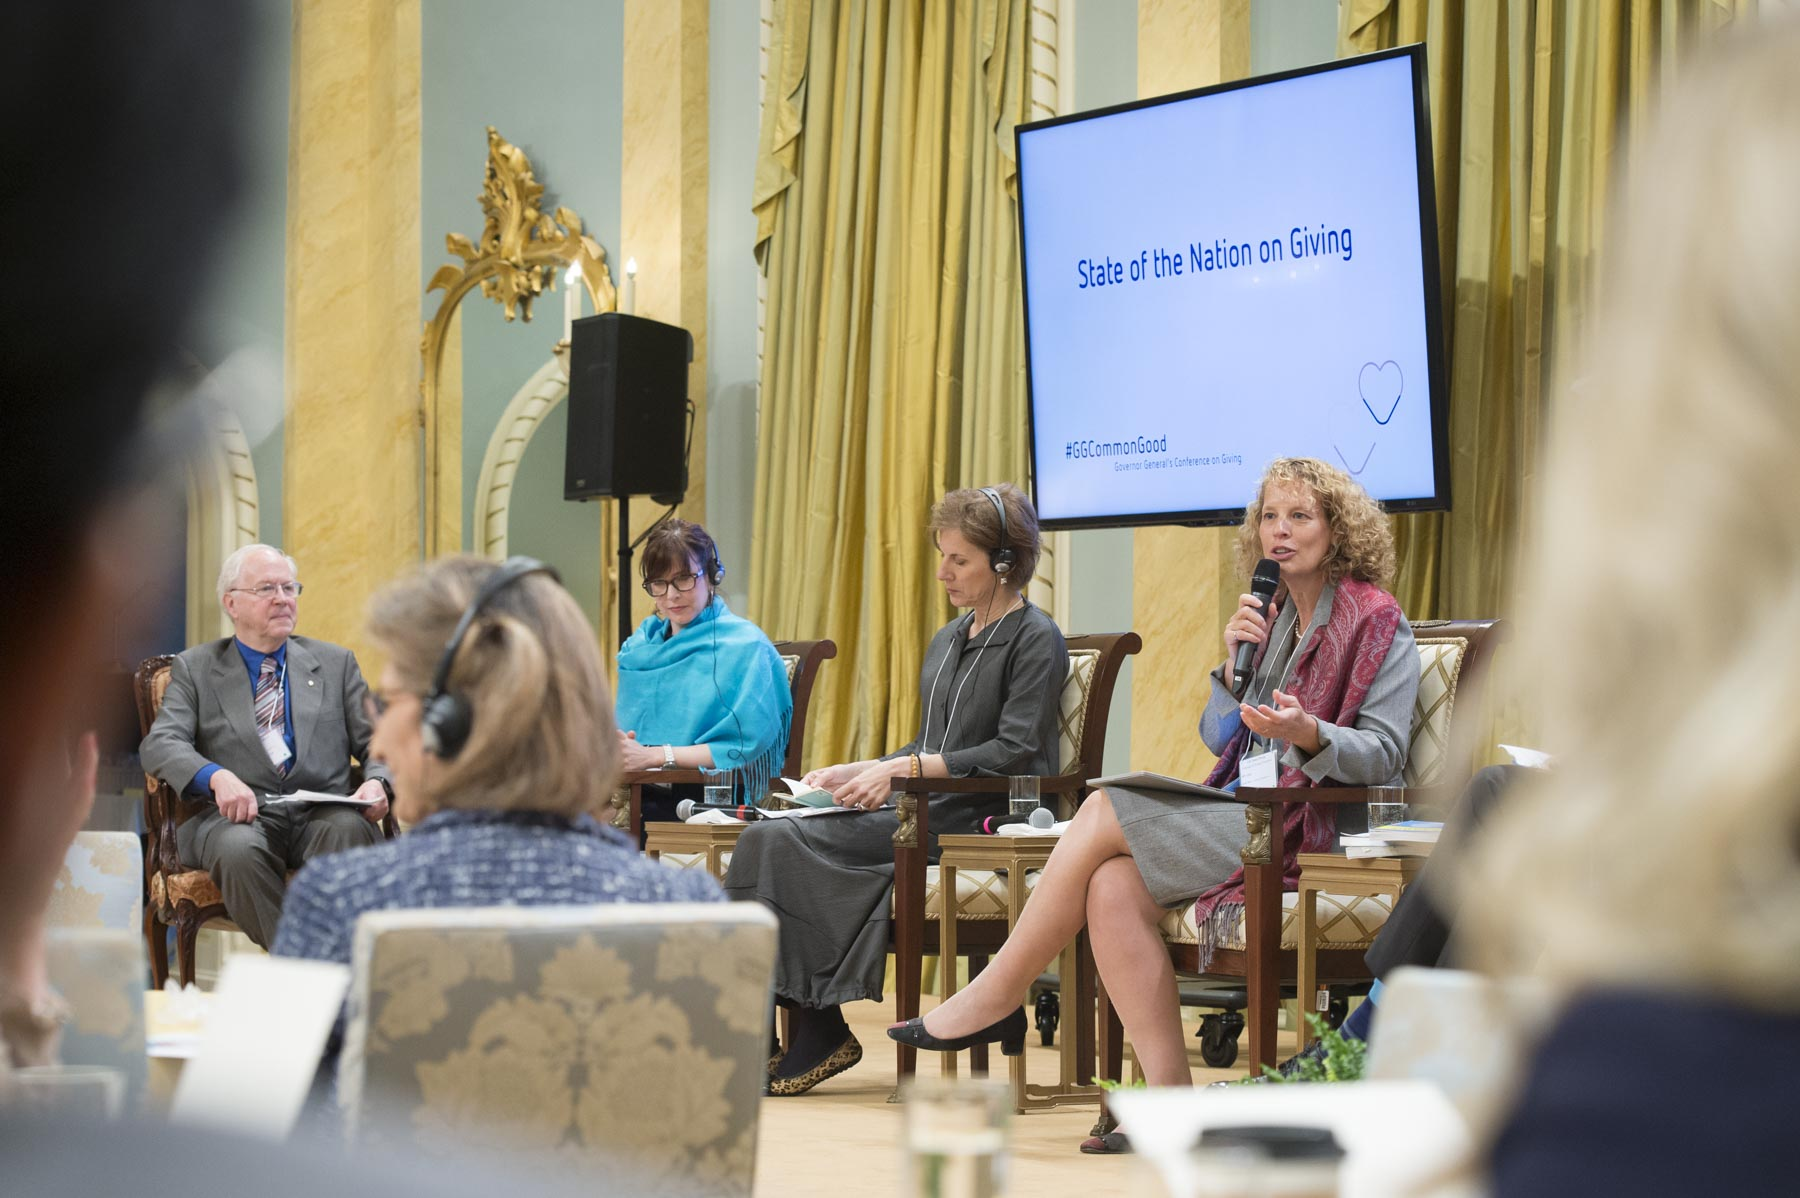 This one-day, national conference, delivered in partnership with the Rideau Hall Foundation, focussed on three major themes: State of the Nation on Giving; Millennials, Values and Giving Behaviour; and Behavioural Science Principles to Encourage Giving.